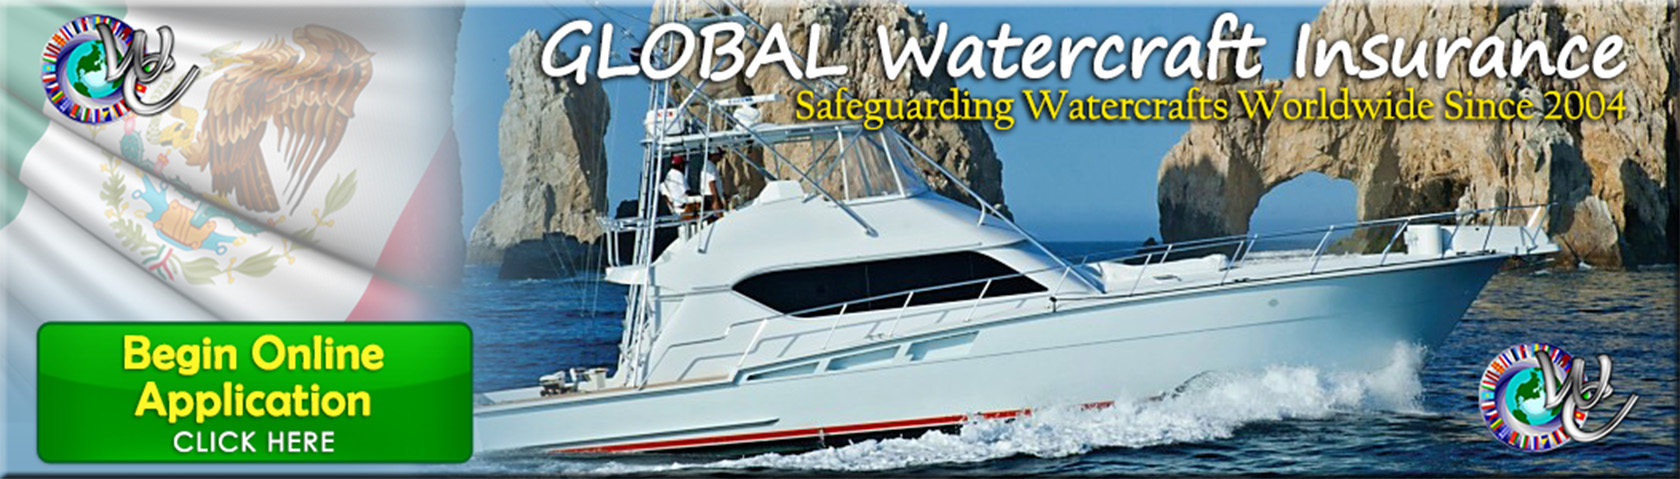 Mexico & Global Watercraft Insurance - Online Application